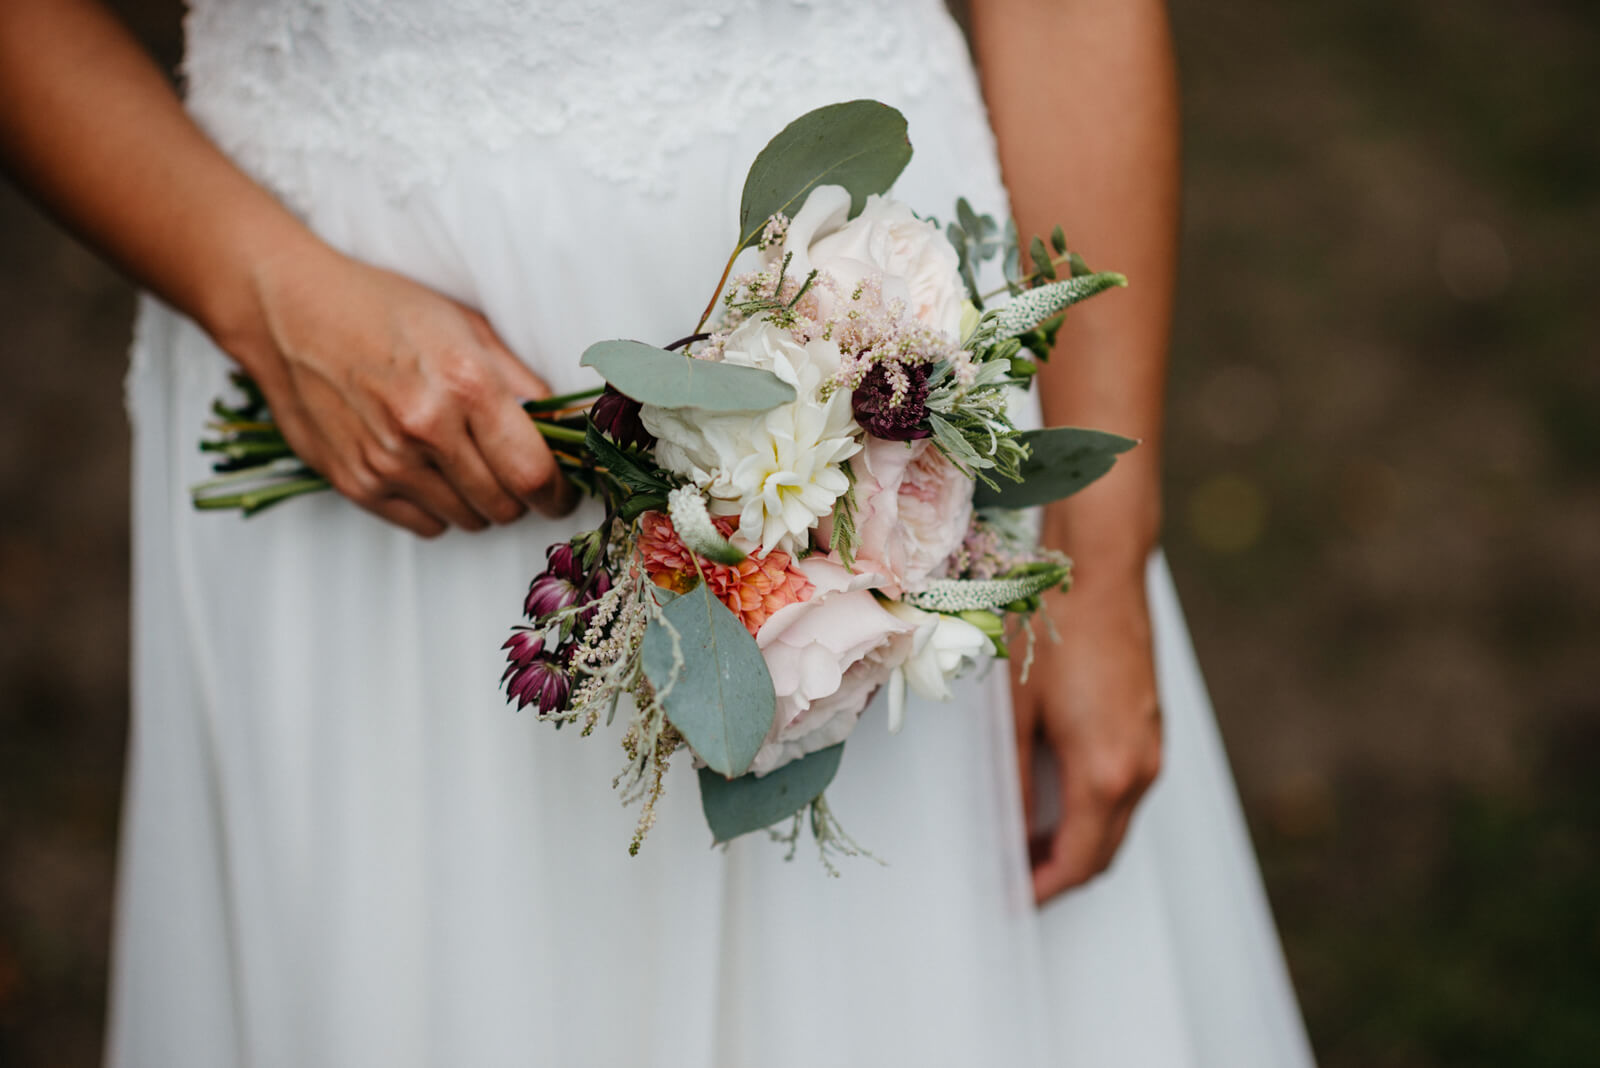 small hand-tied bquet of pale pink, wine and white flowers